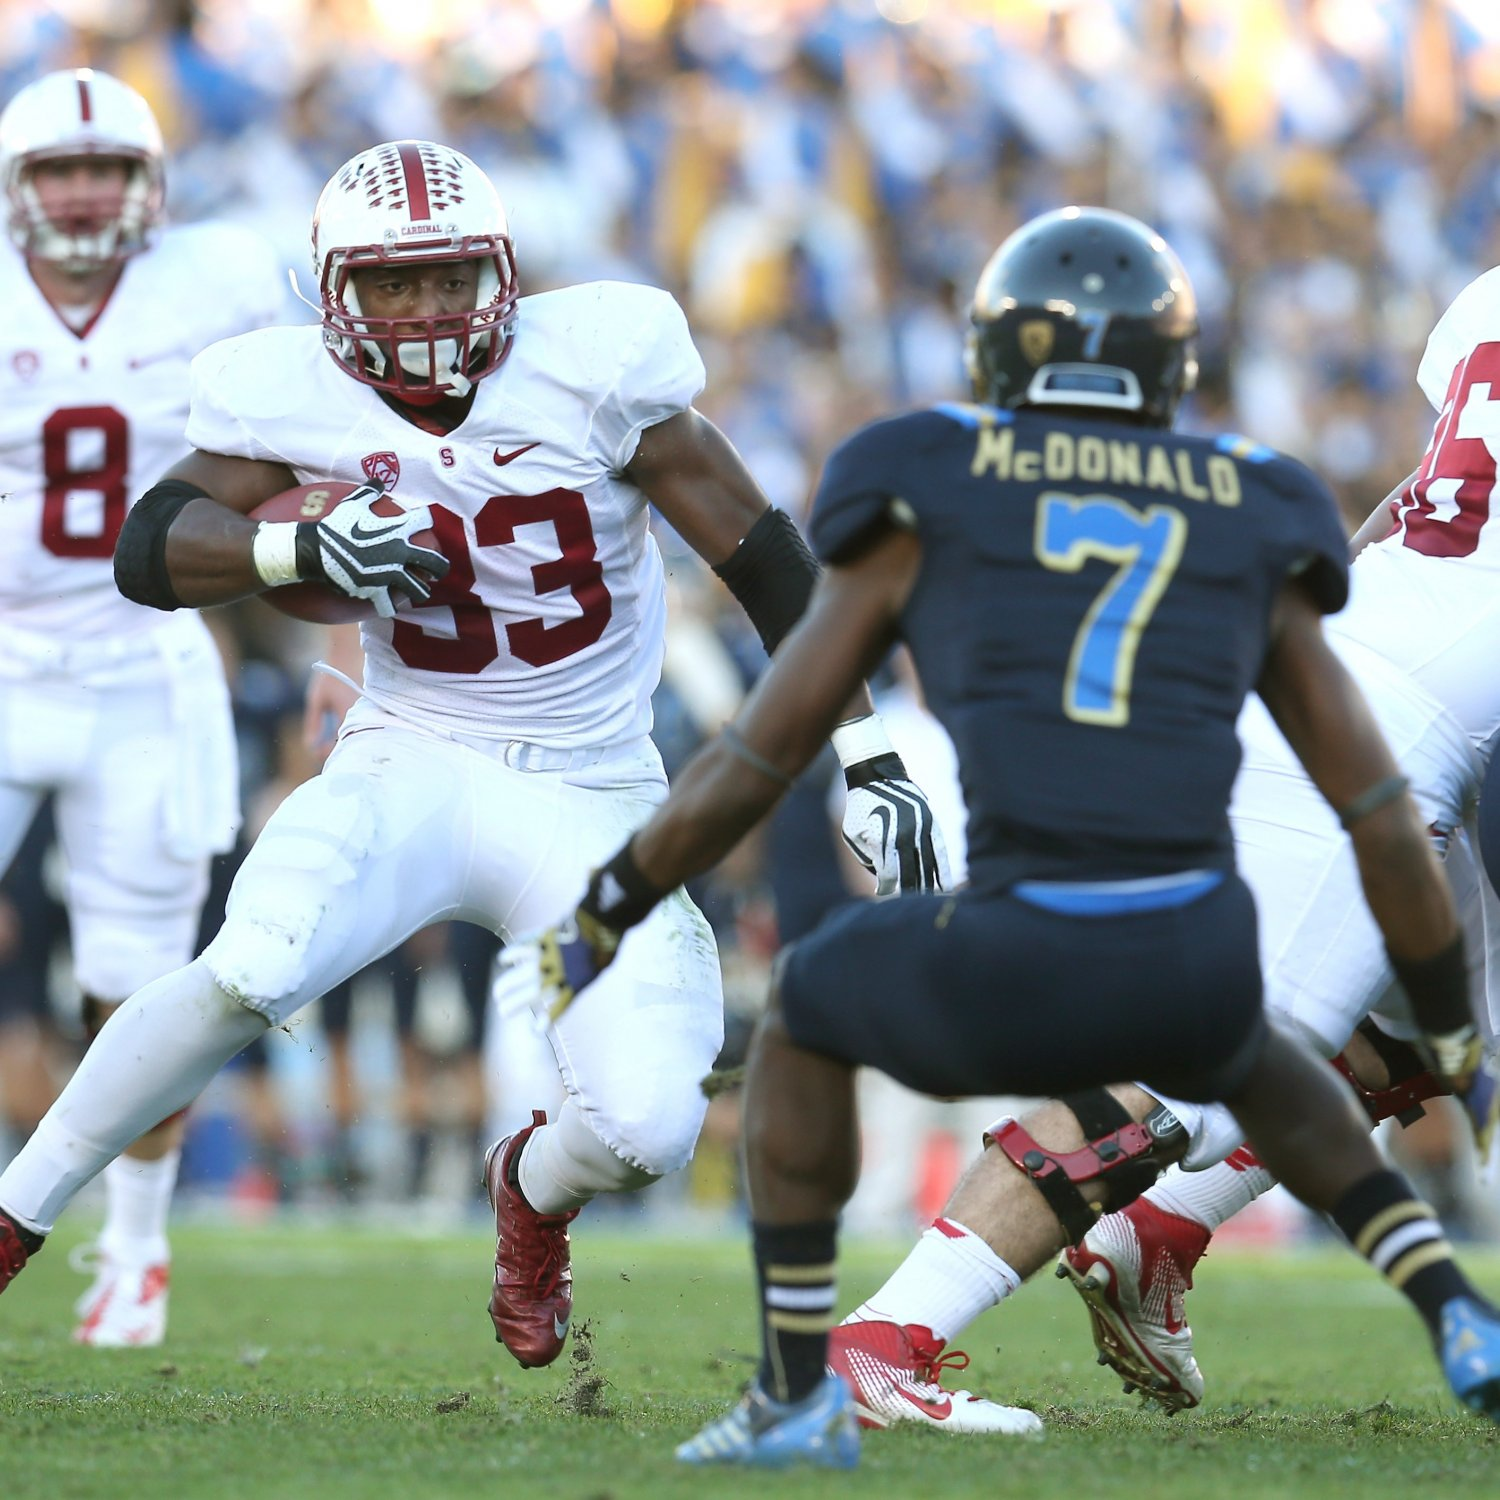 UCLA Football: Spring Practice Roster Updates